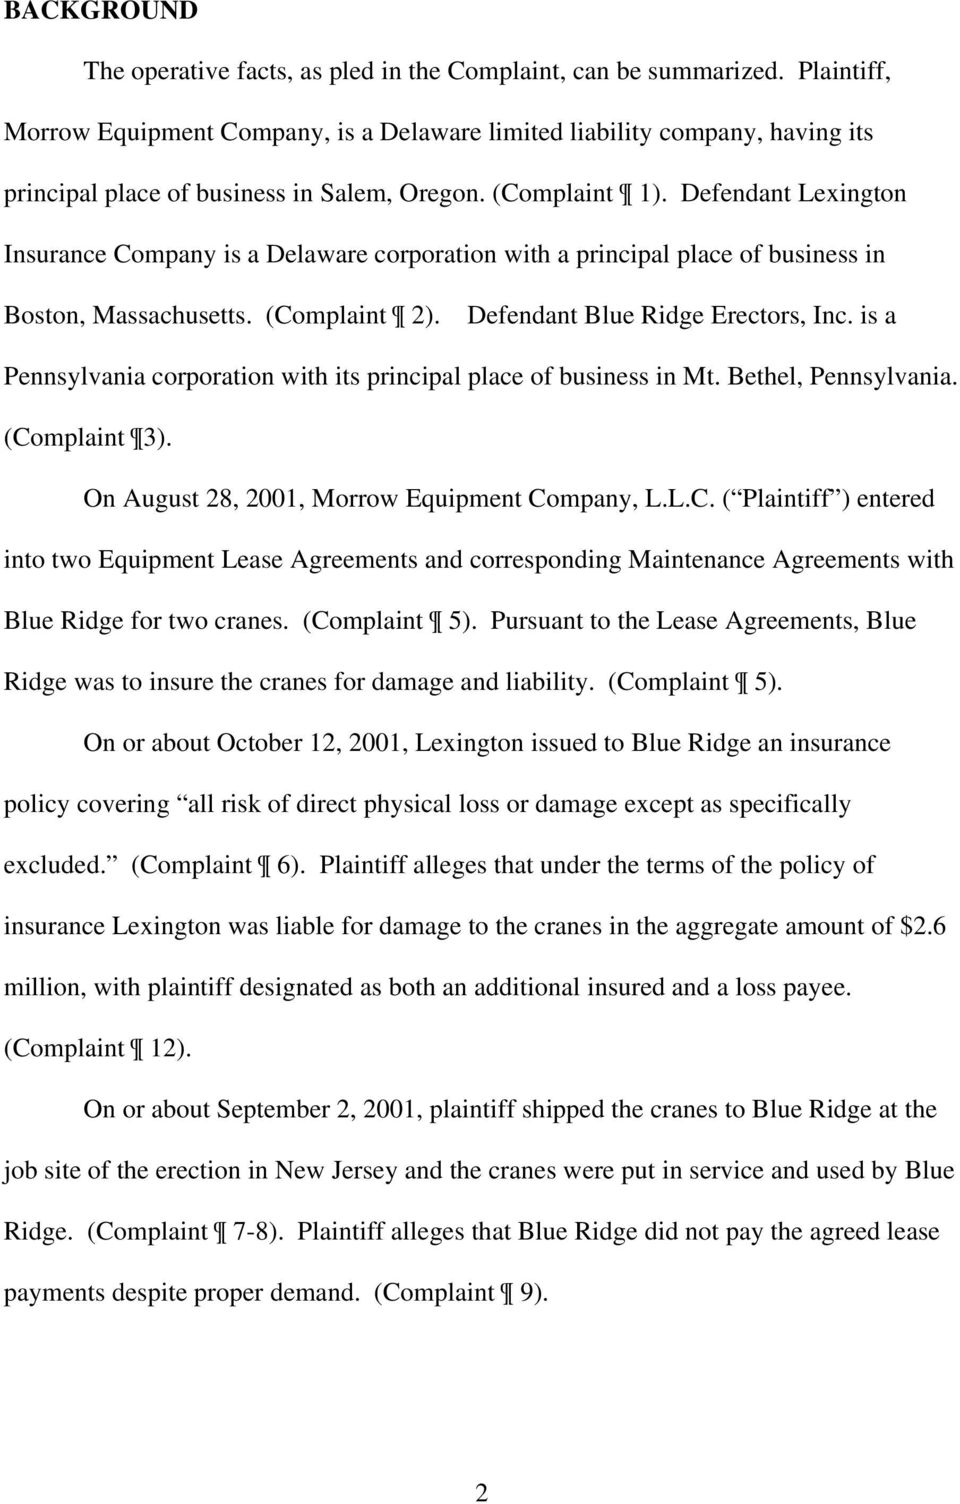 Defendant Lexington Insurance Company is a Delaware corporation with a principal place of business in Boston, Massachusetts. (Complaint 2). Defendant Blue Ridge Erectors, Inc.